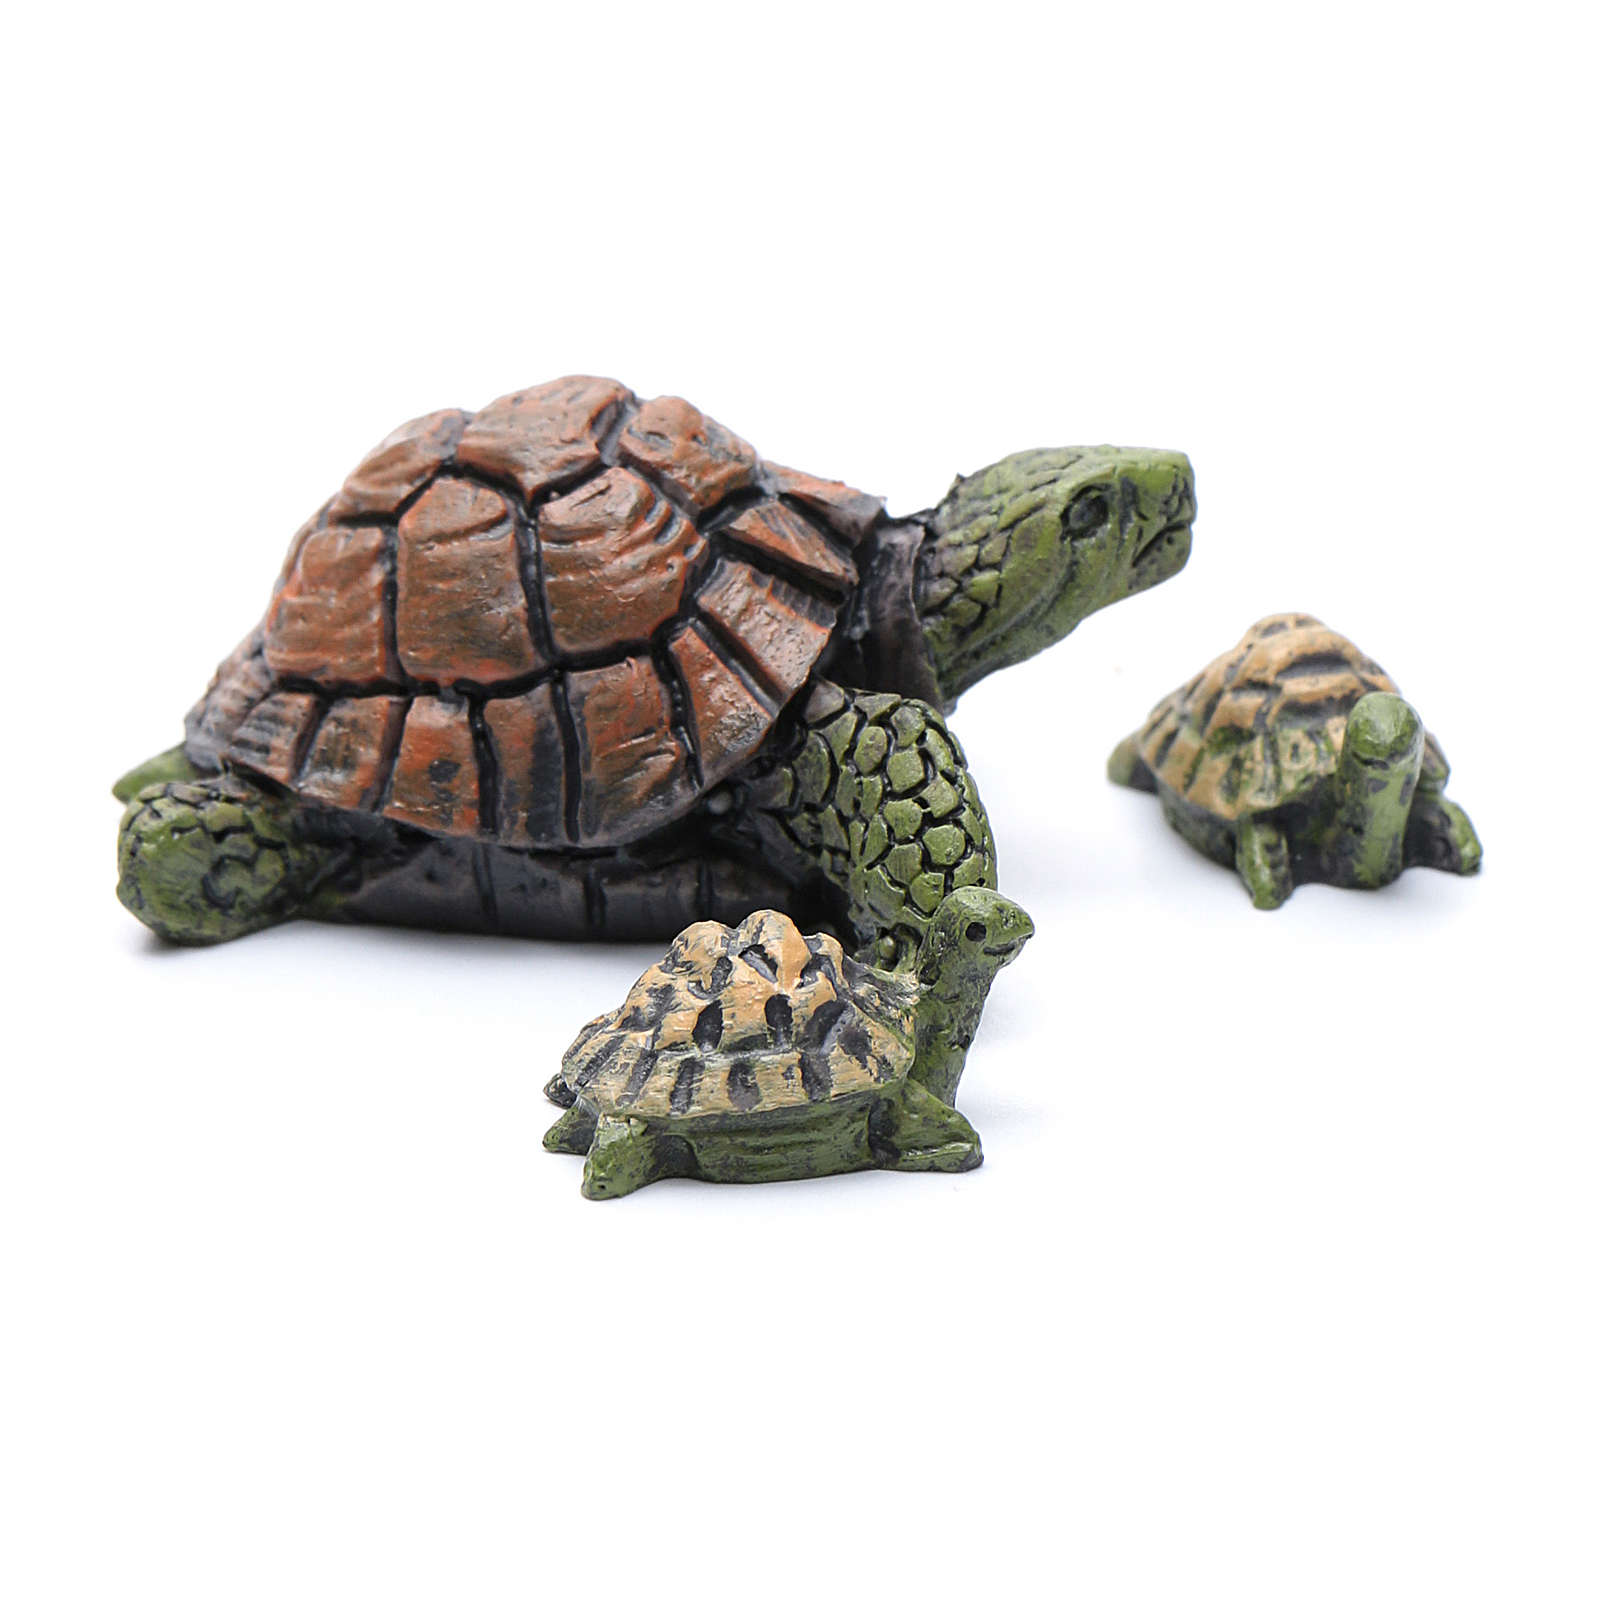 Nativity figurines, turtles in resin measuring 2-4 cm, 3 pieces 3